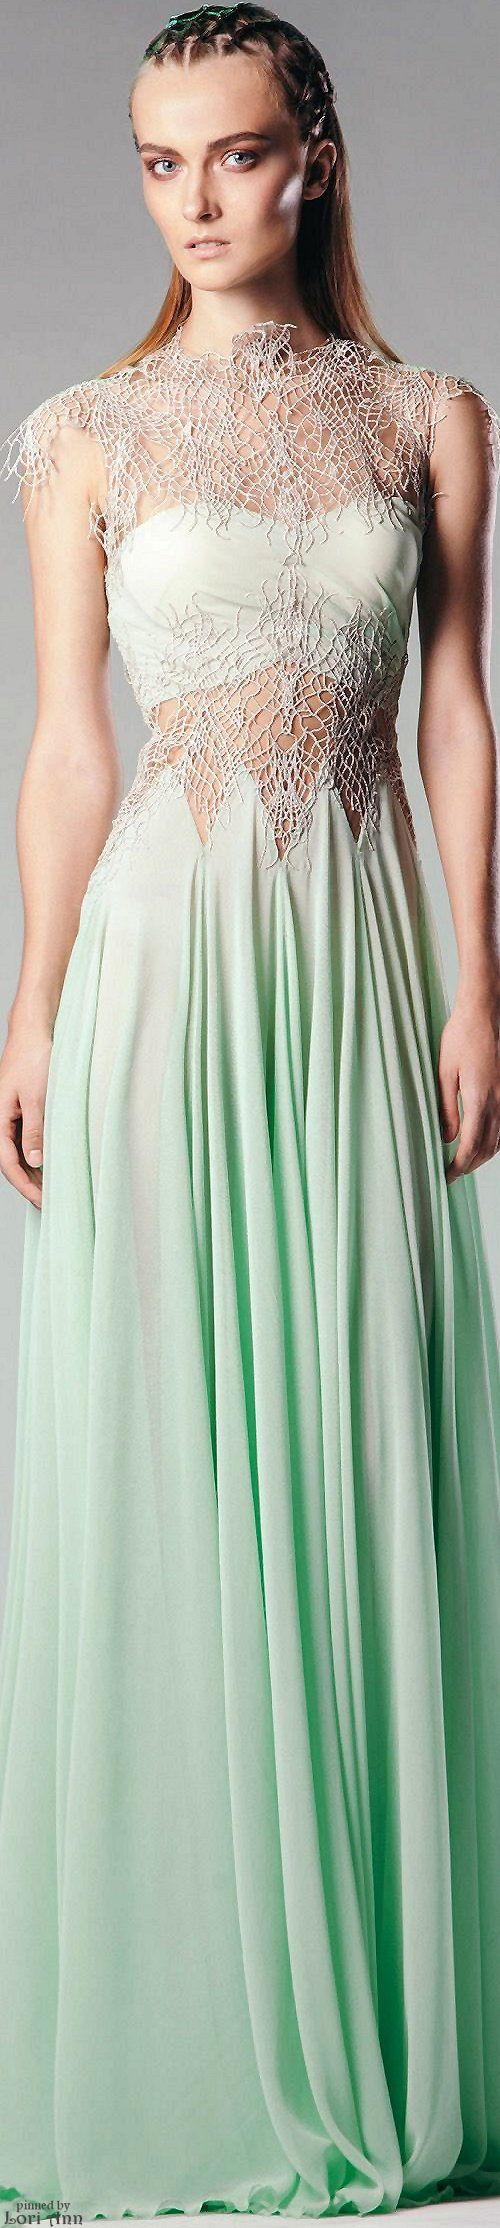 Rouba G. Spring 2016 RTW. ❣Julianne McPeters❣ no pin limits